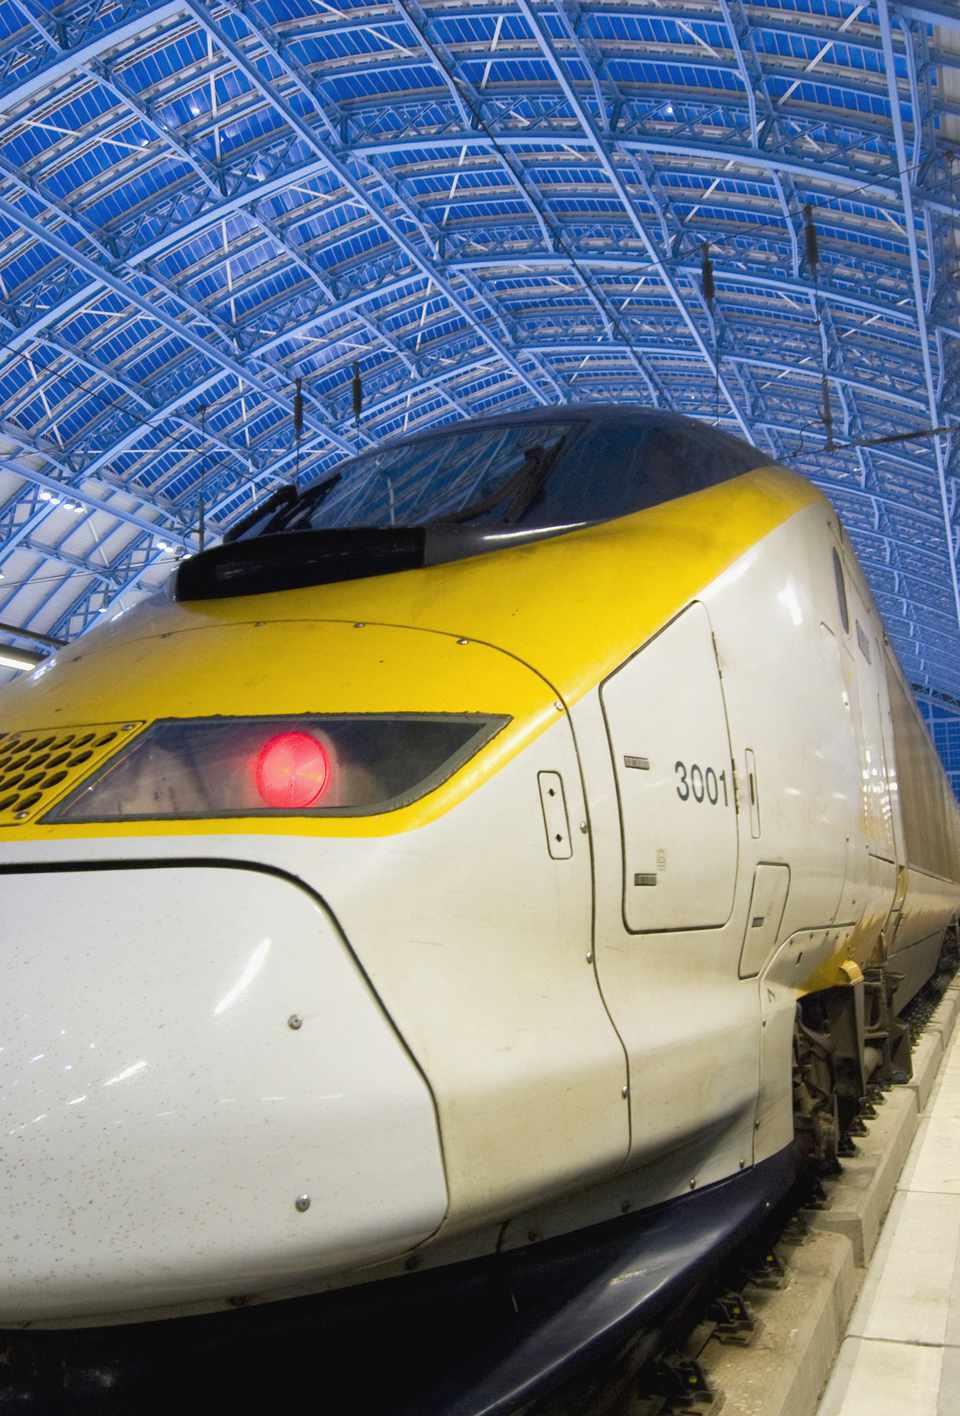 Eurostar at dusk in St Pancras Station London